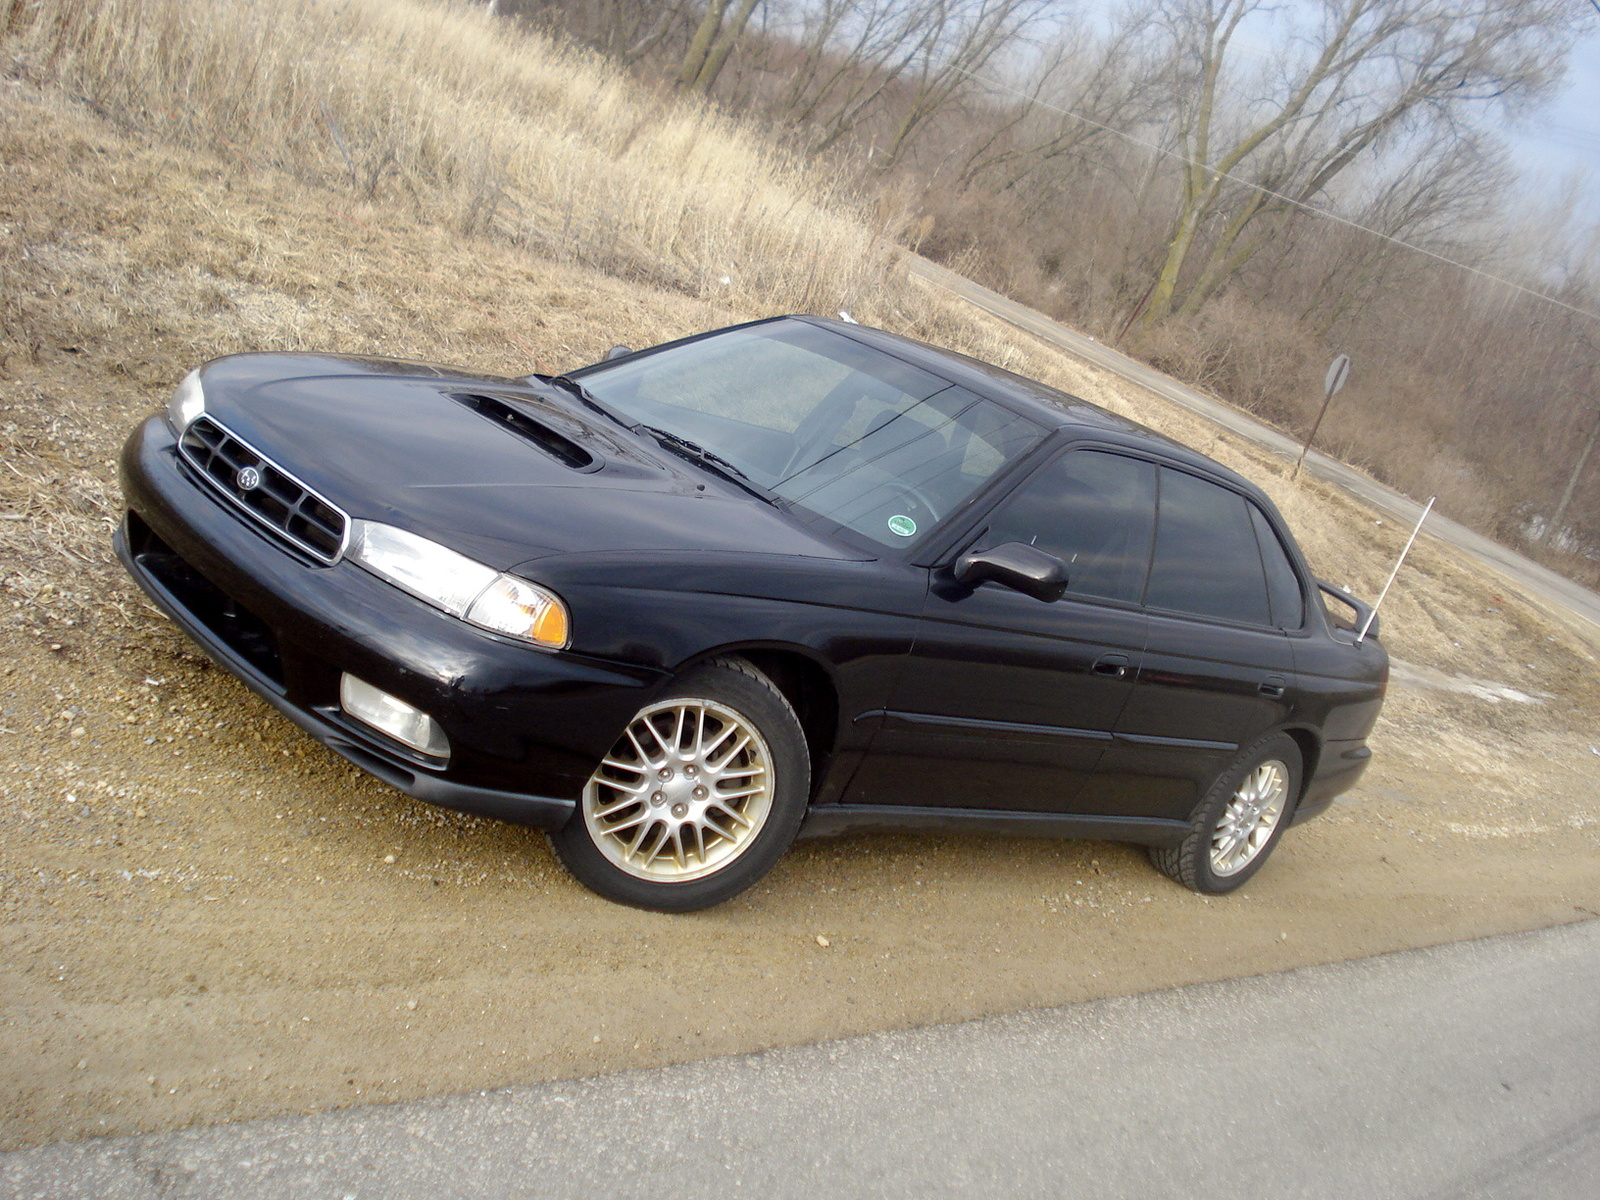 Picture of 1998 subaru legacy 4 dr gt awd sedan exterior